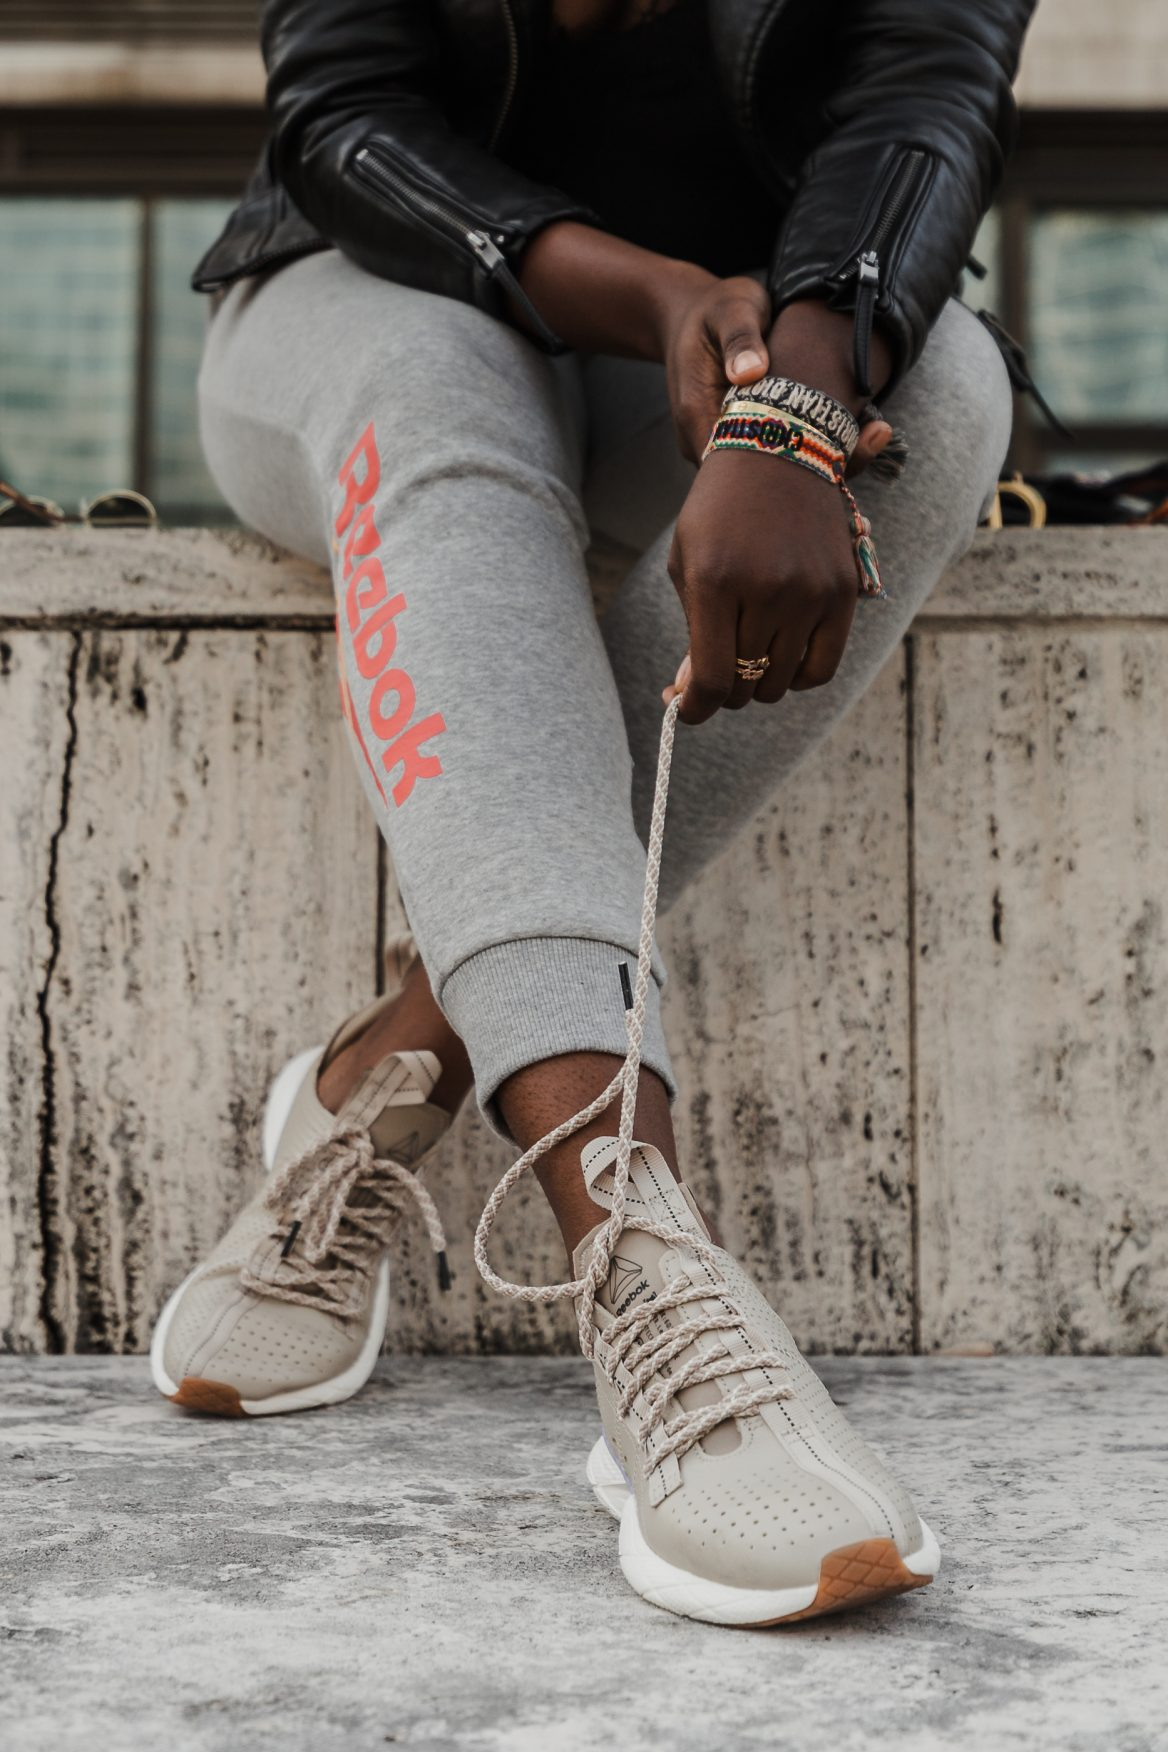 REEBOK-Sole-Fury-Sneaker-Athleisure-OOTD-How-to-Style-Sweatpants-Sneakers-Coco-Bassey-@cocobassey-Millennielle-23-584x876@2x.jpg